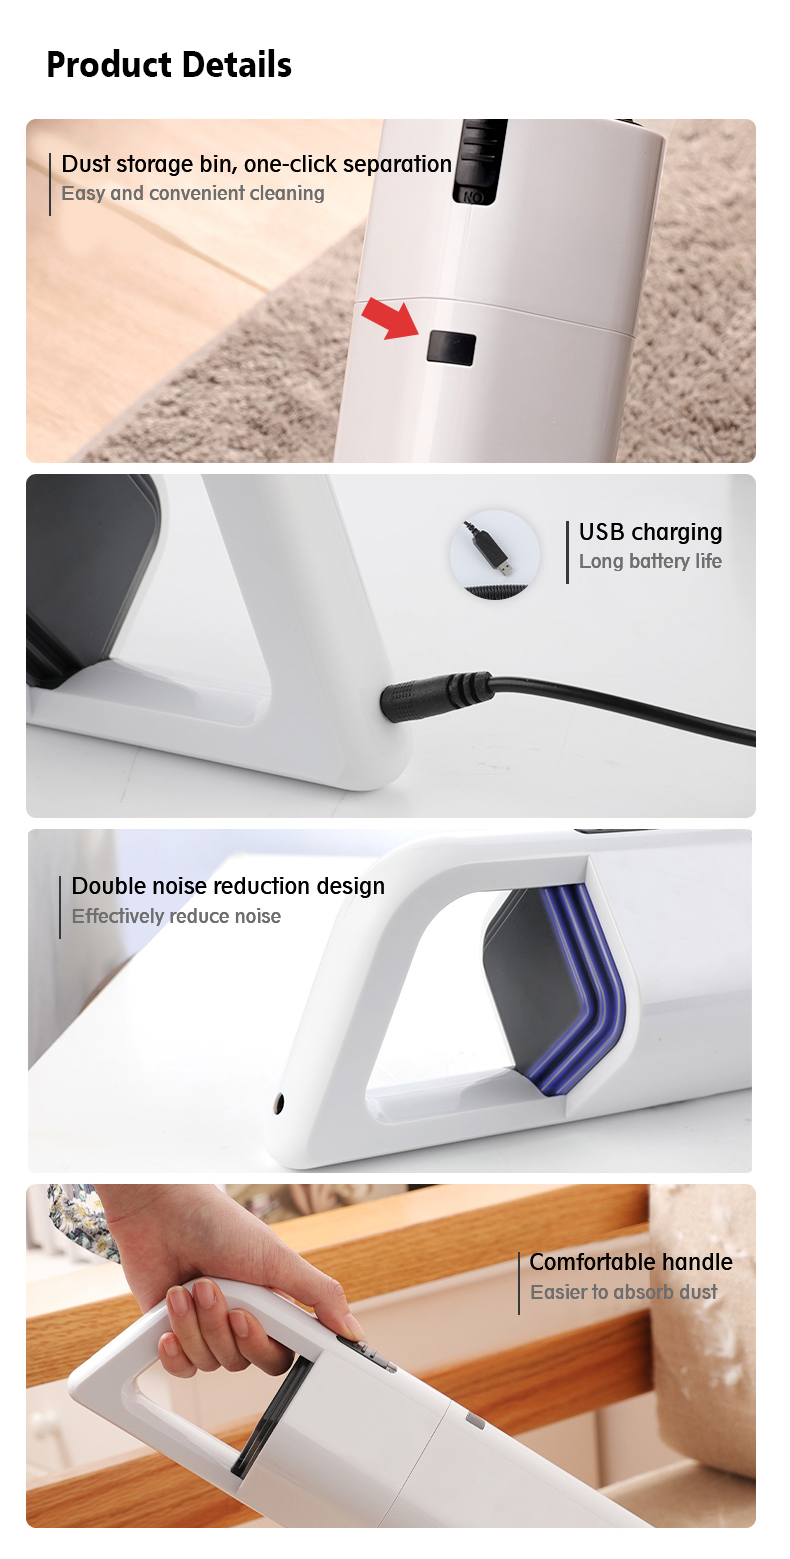 product detail:one-click separation,usb charging,long battery life,double noise reduction design,easier to absorb dust with the comfortable handle